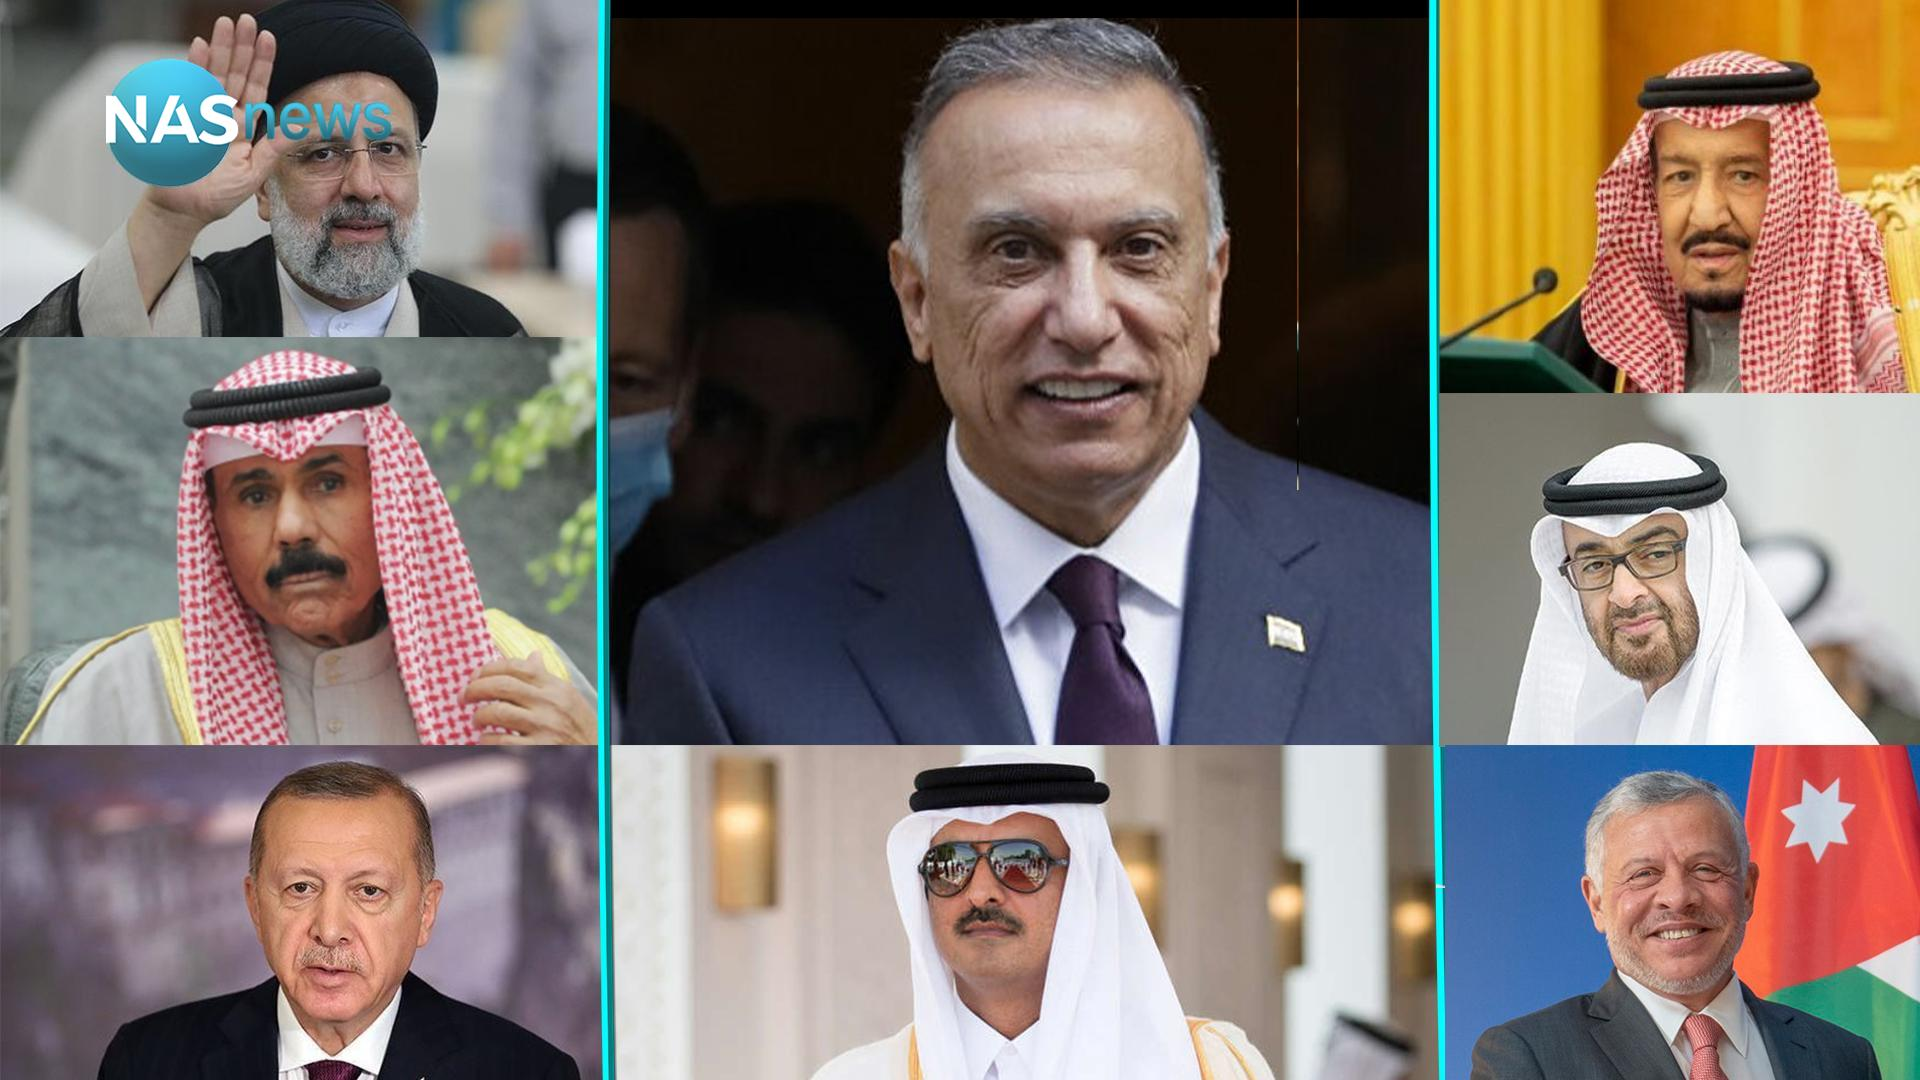 Going on the 'Baghdad Summit' conference: It will discuss important files